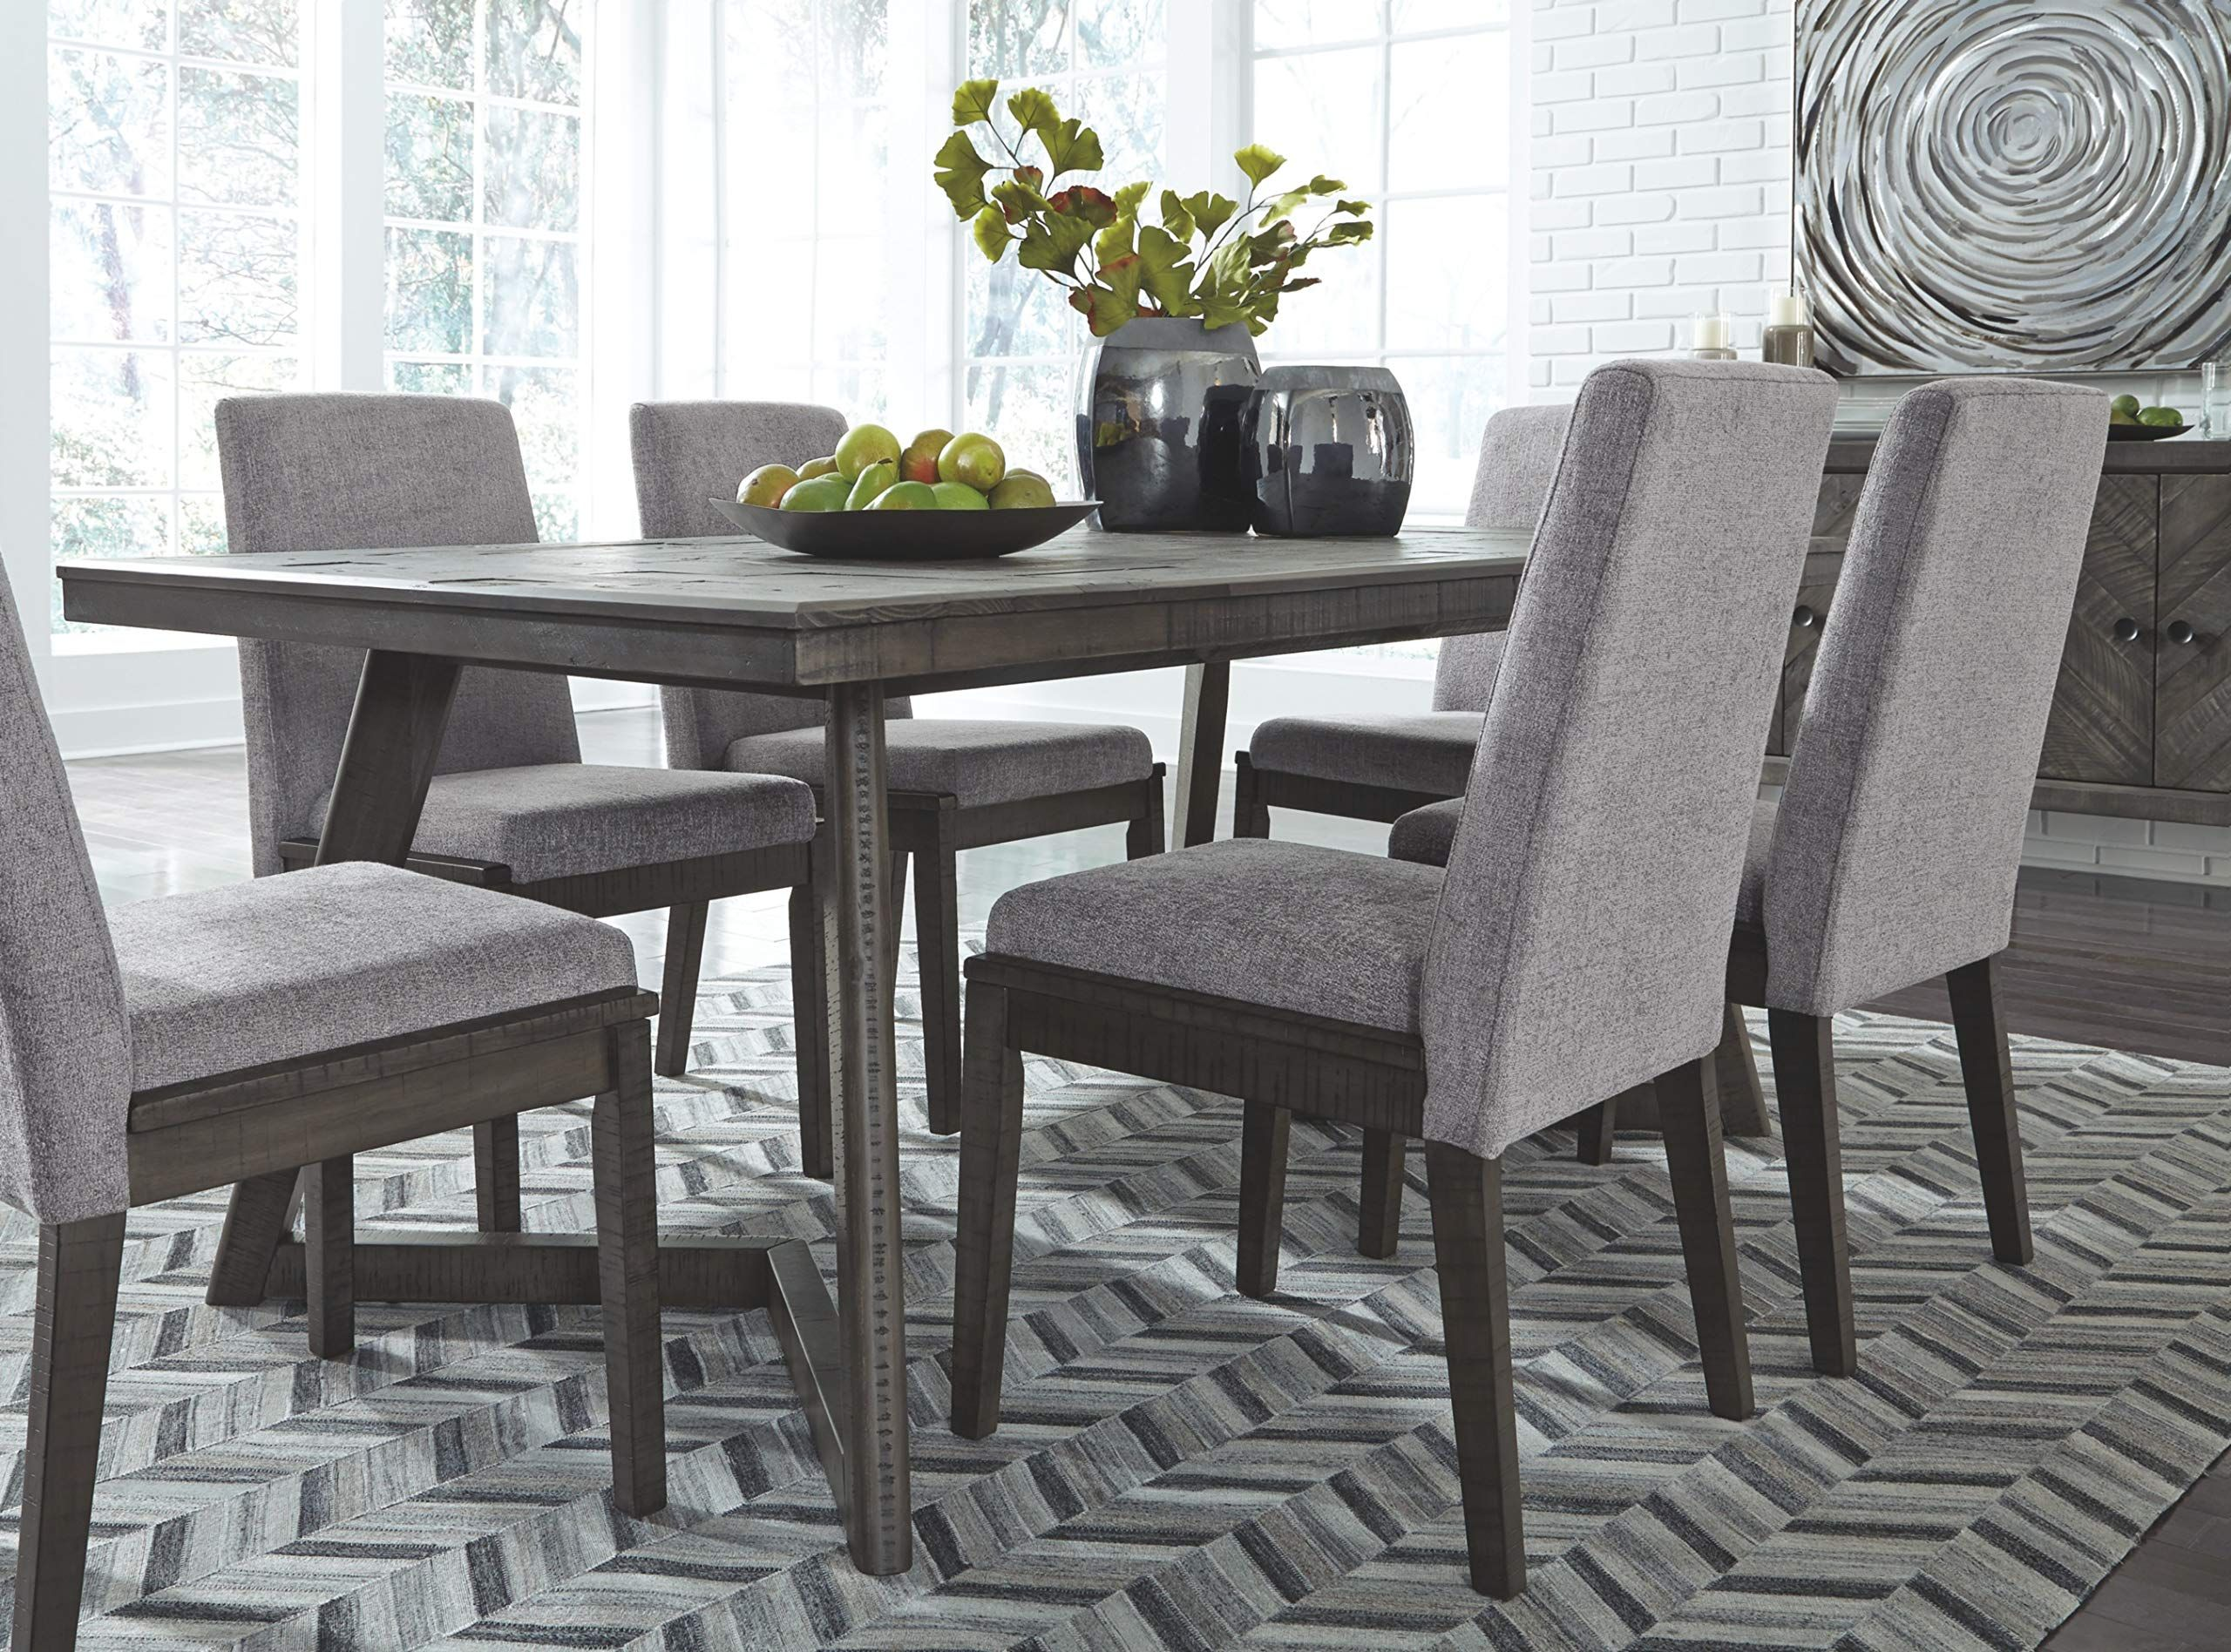 Signature Design By Ashley Besteneer Rectangular Dining Room Table Contemporary Style Rectangular Dining Room Table Dining Room Table Grey Dining Tables